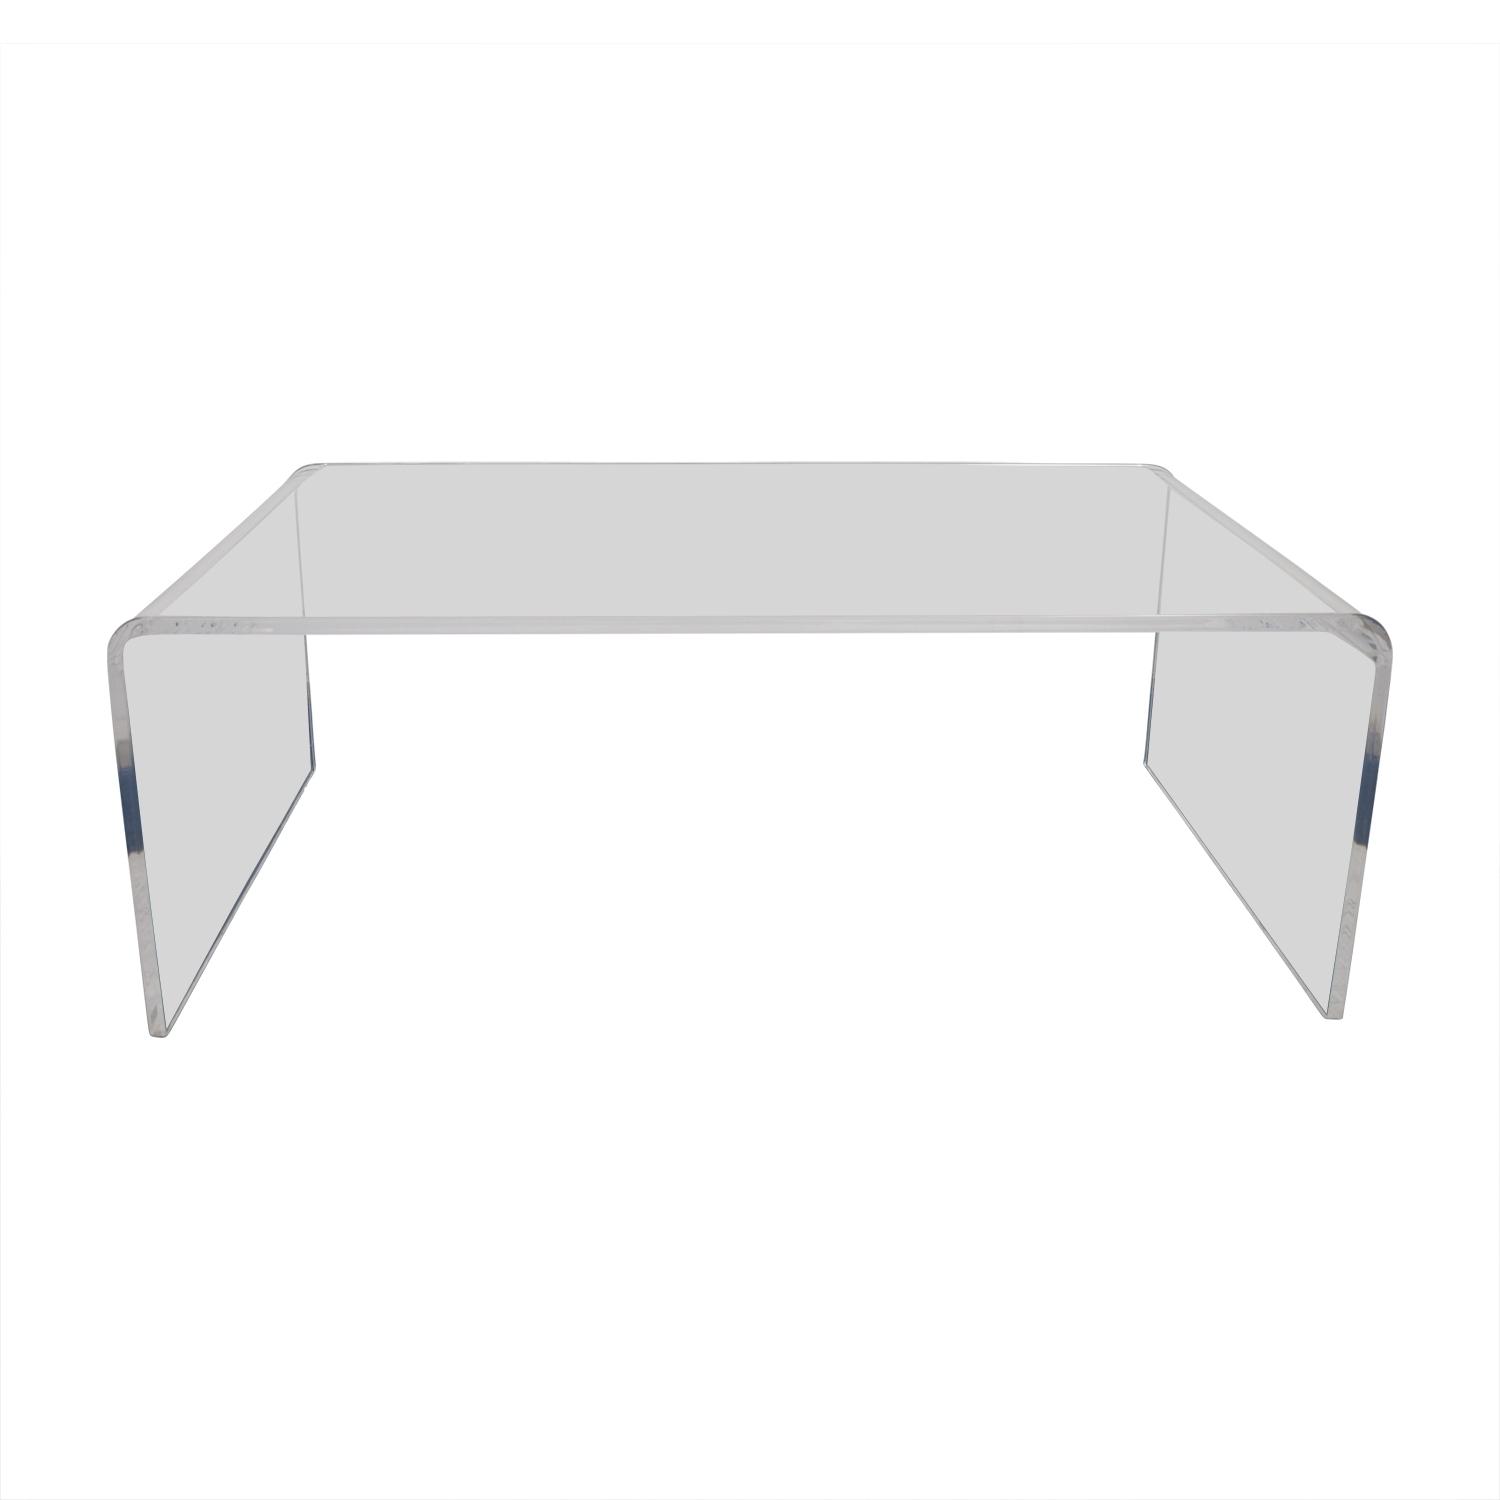 60% Off - Cb2 Cb2 Peekaboo Acrylic Coffee Table / Tables in Peekaboo Acrylic Coffee Tables (Image 1 of 30)